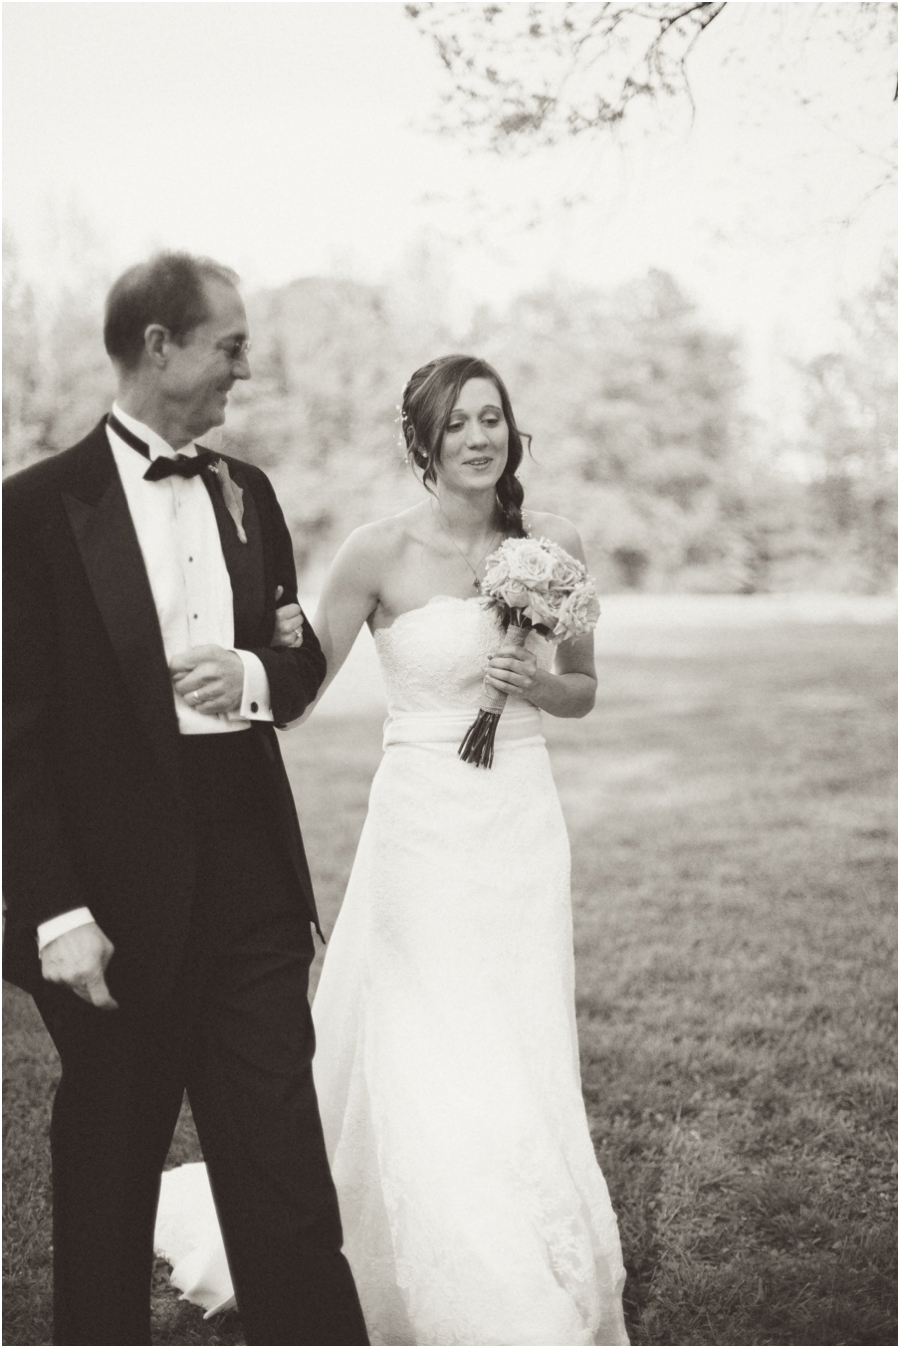 father walking bride up the aisle at a beautiful outdoor wedding, vintage wedding photographers